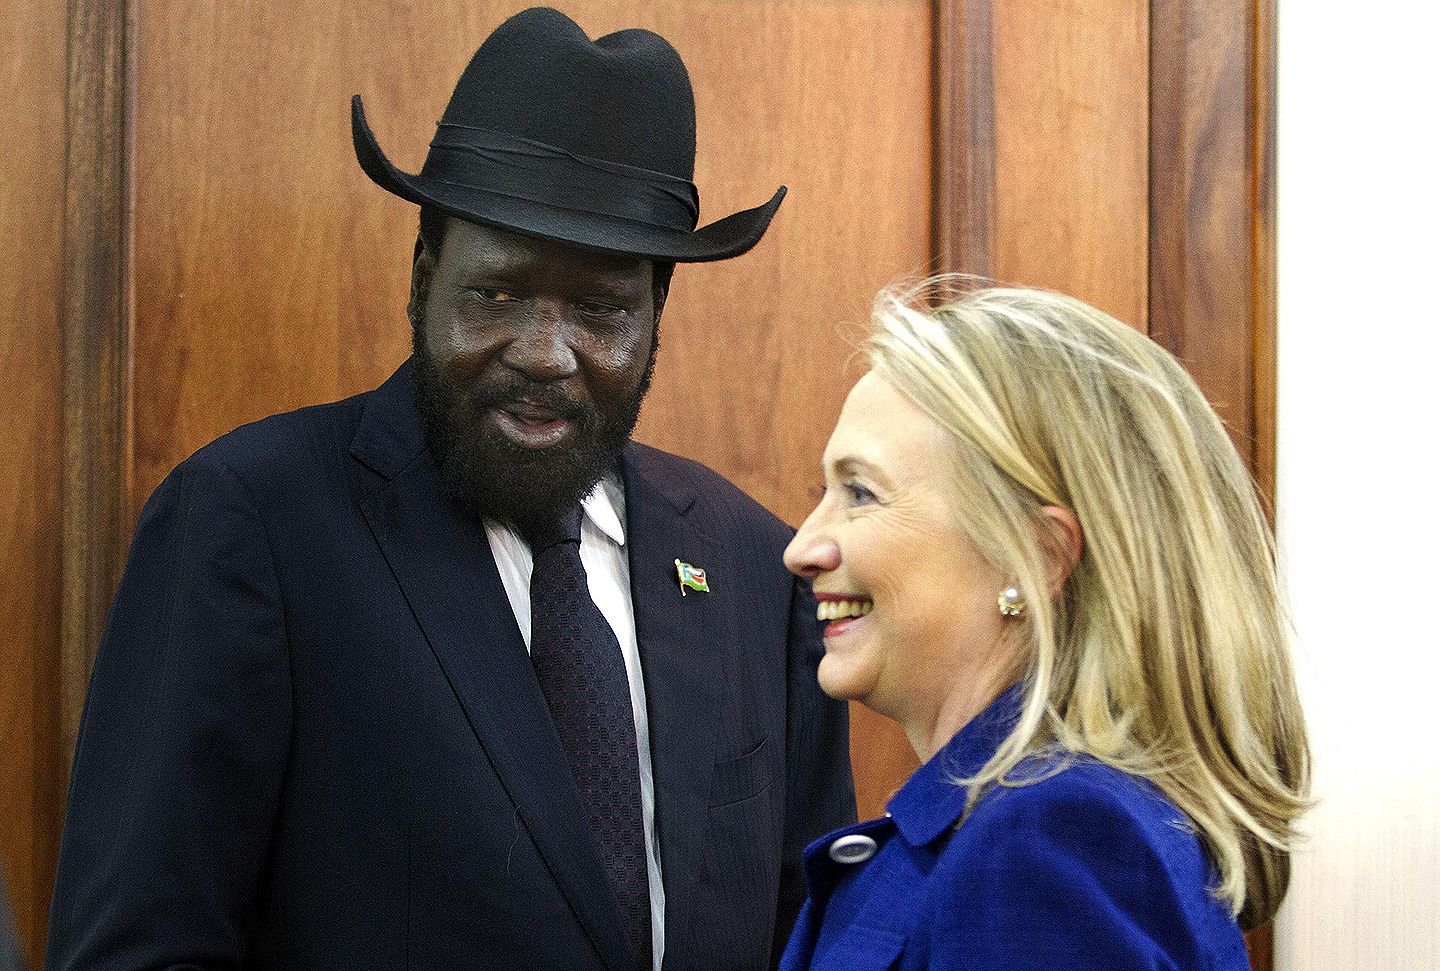 U.S. Secretary of State Hillary Clinton (R) meets with South Sudanese President Salva Kiir at the Presidential Office Building in Juba August 3, 2012. U.S. Secretary of State Clinton urged South Sudan and Sudan on Friday to end an oil dispute that has brought the neighbors to the brink of war, during the highest-level visit of a U.S. official to Juba since its independence a year ago.  REUTERS/Jacquelyn Martin/Pool (SOUTH SUDAN - Tags: POLITICS) (Newscom TagID: rtrlfive409924.jpg) [Photo via Newscom]